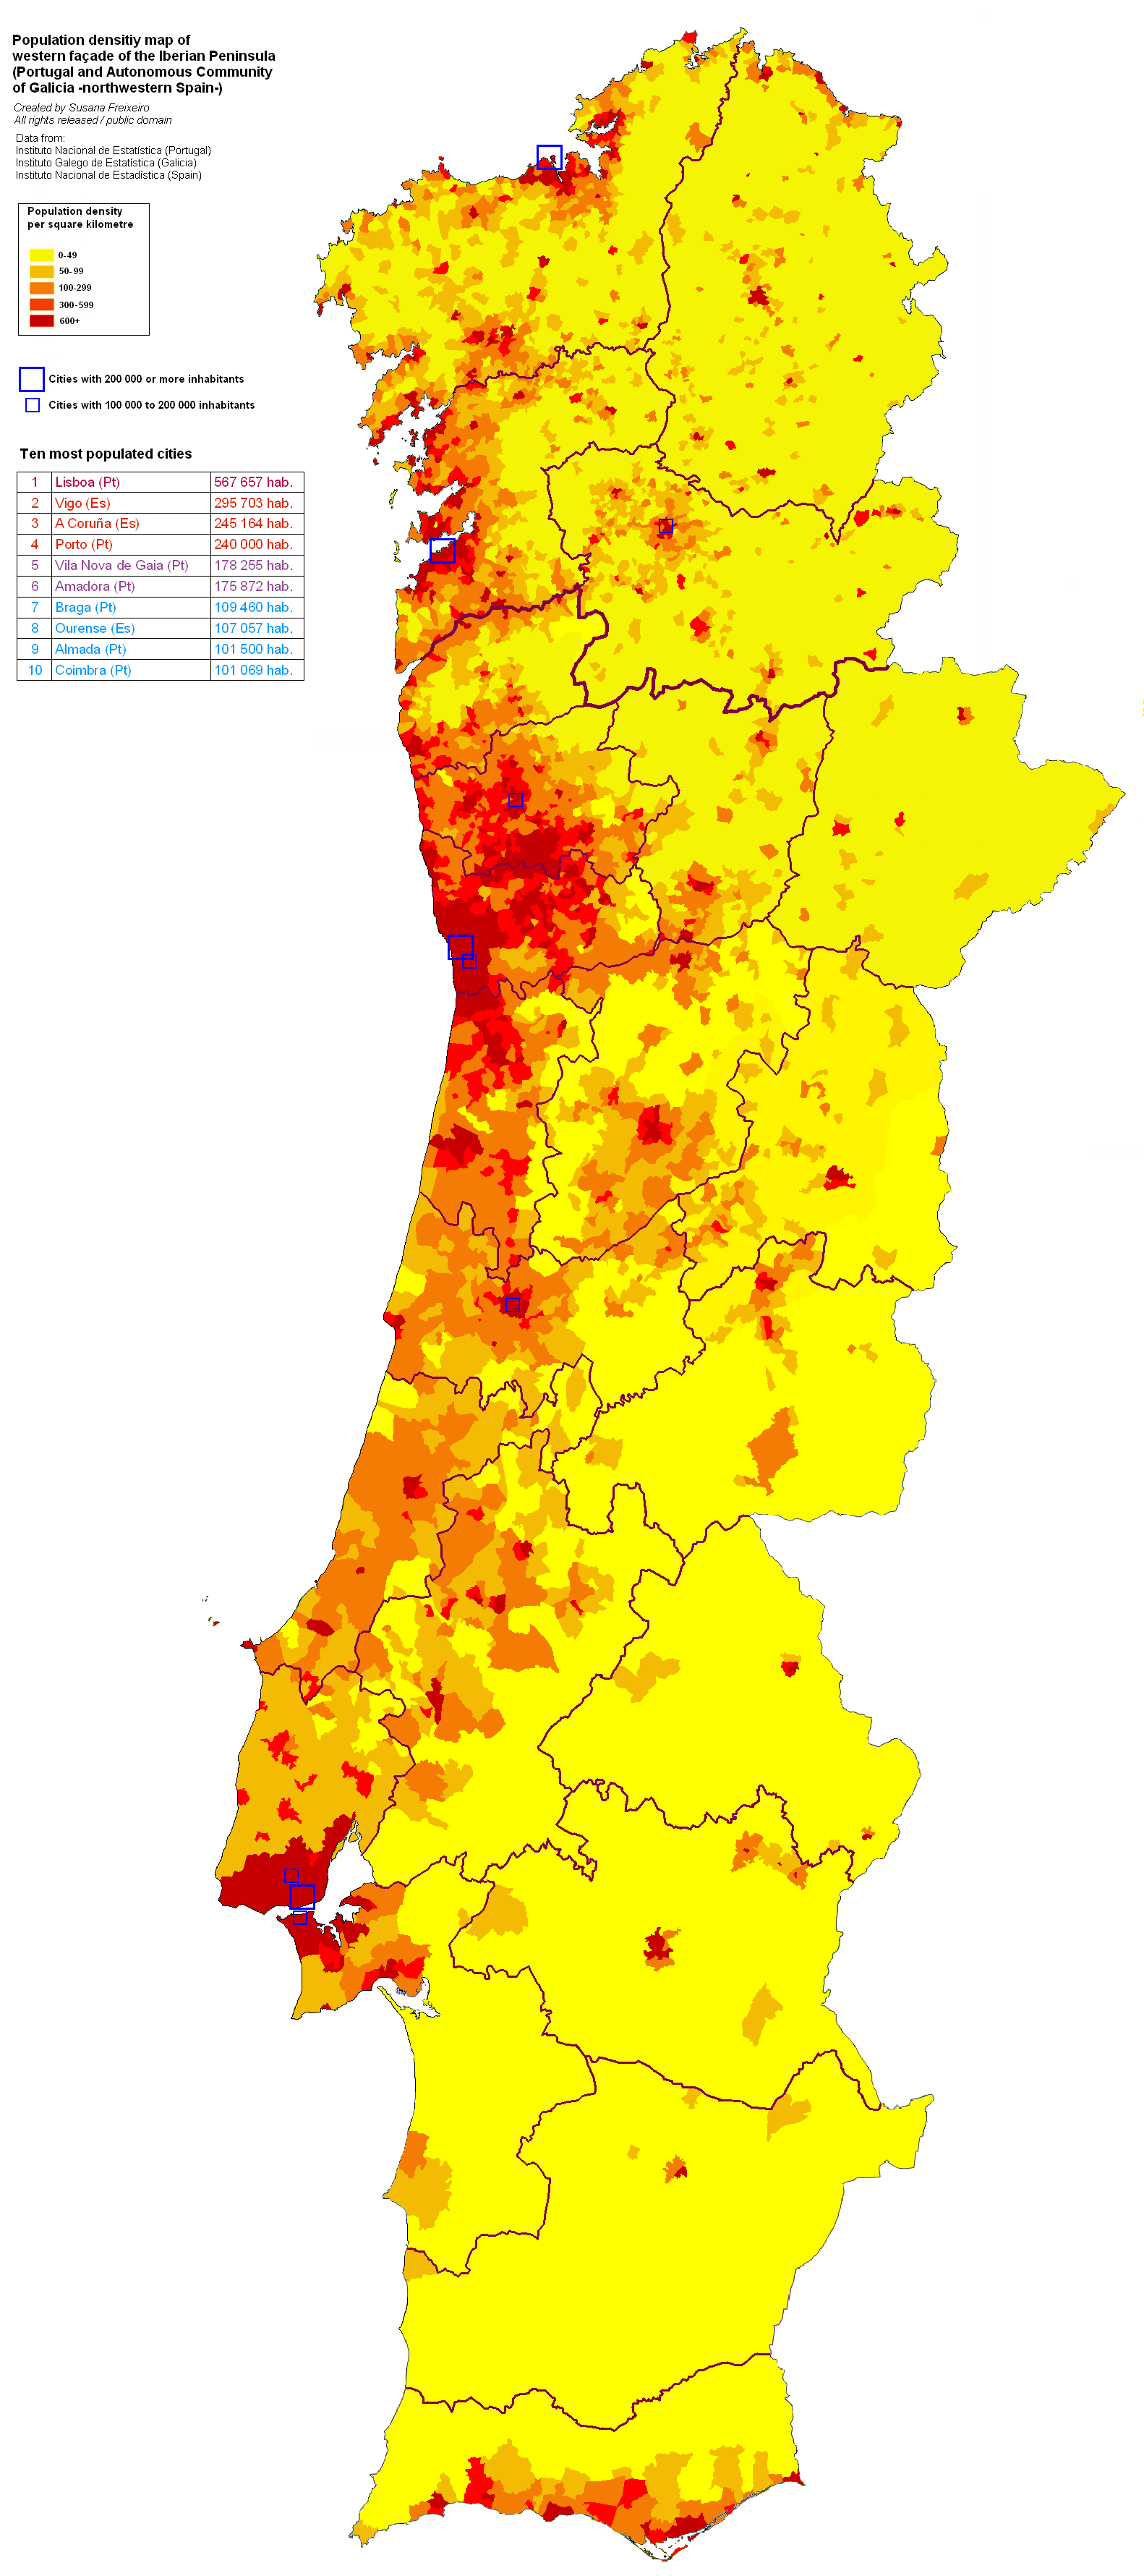 File:Population density of western Iberian Peninsula.PNG.